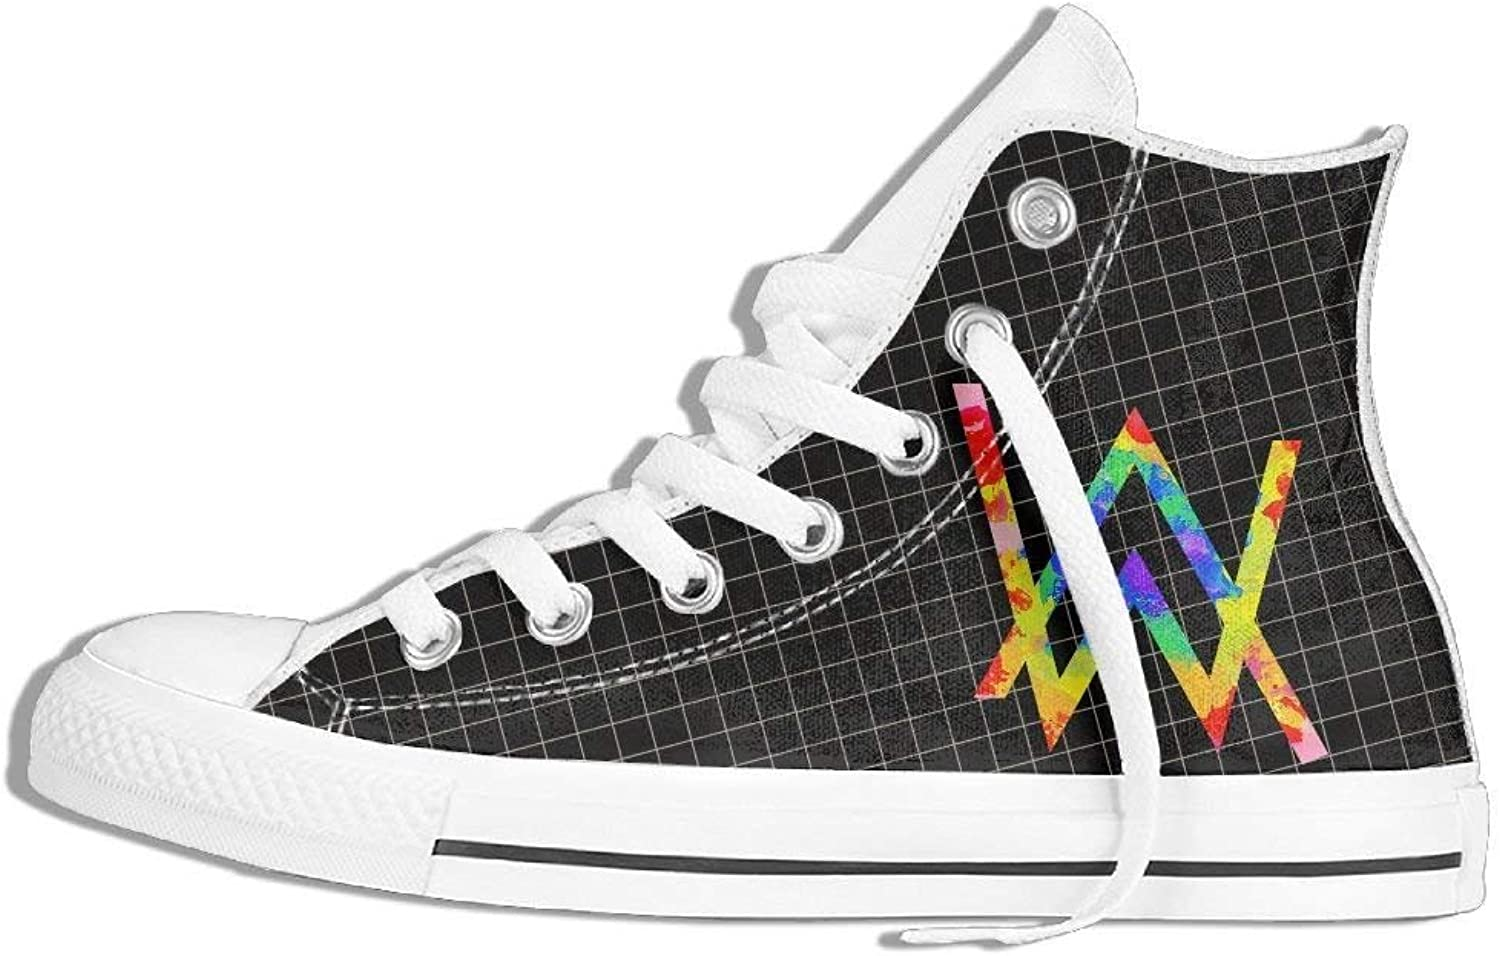 HuNa-Store colorful Alan Walker Unisex Lightweight Casual shoes High-top Canvas shoes Fashion Sneaker